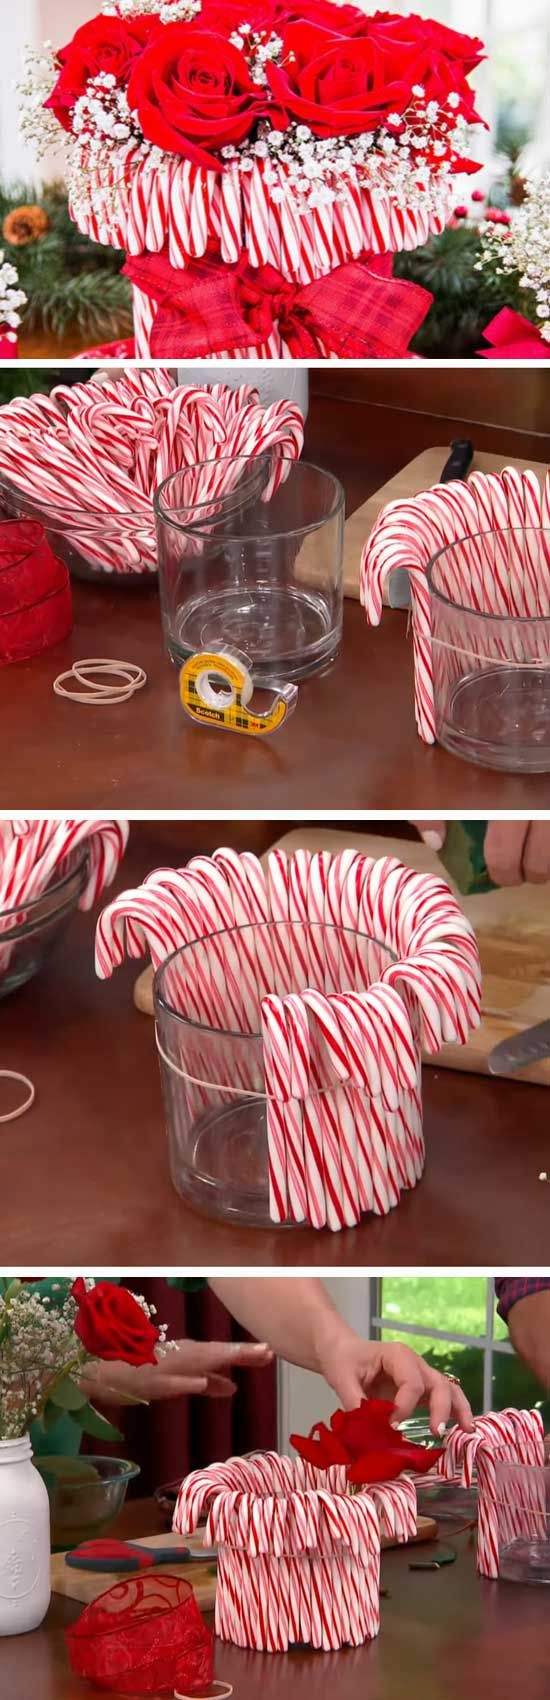 Lovely Christmas Craft Party Ideas For Adults Part - 10: Candy Cane Vase | 20 DIY Christmas Party Ideas For Adults